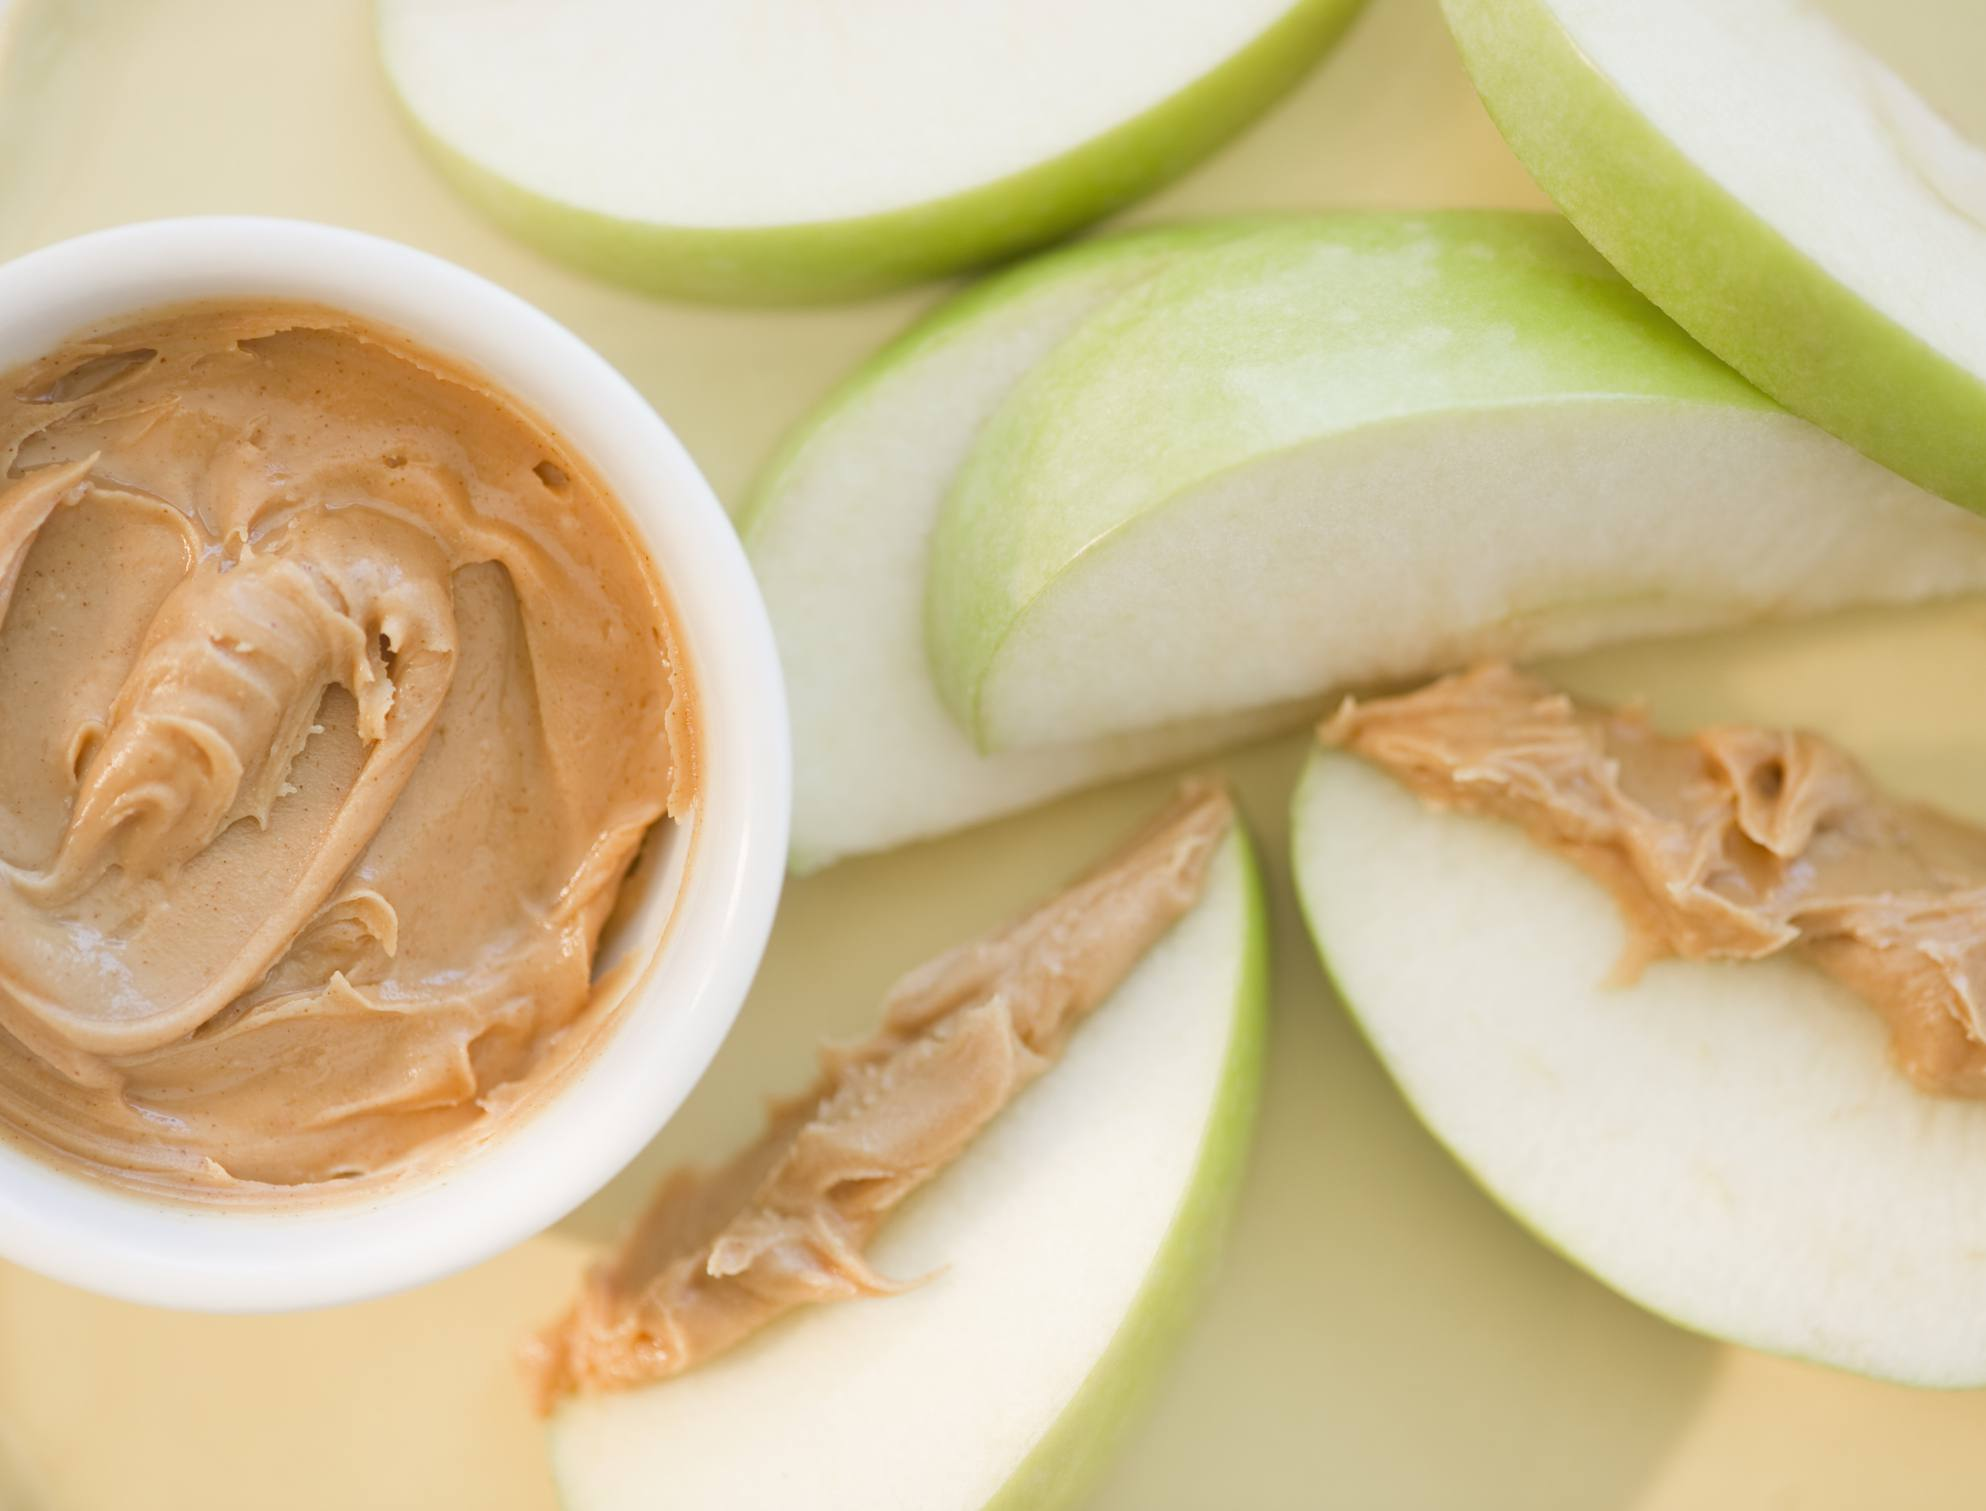 Apples and peanut butter make a good snack for work.